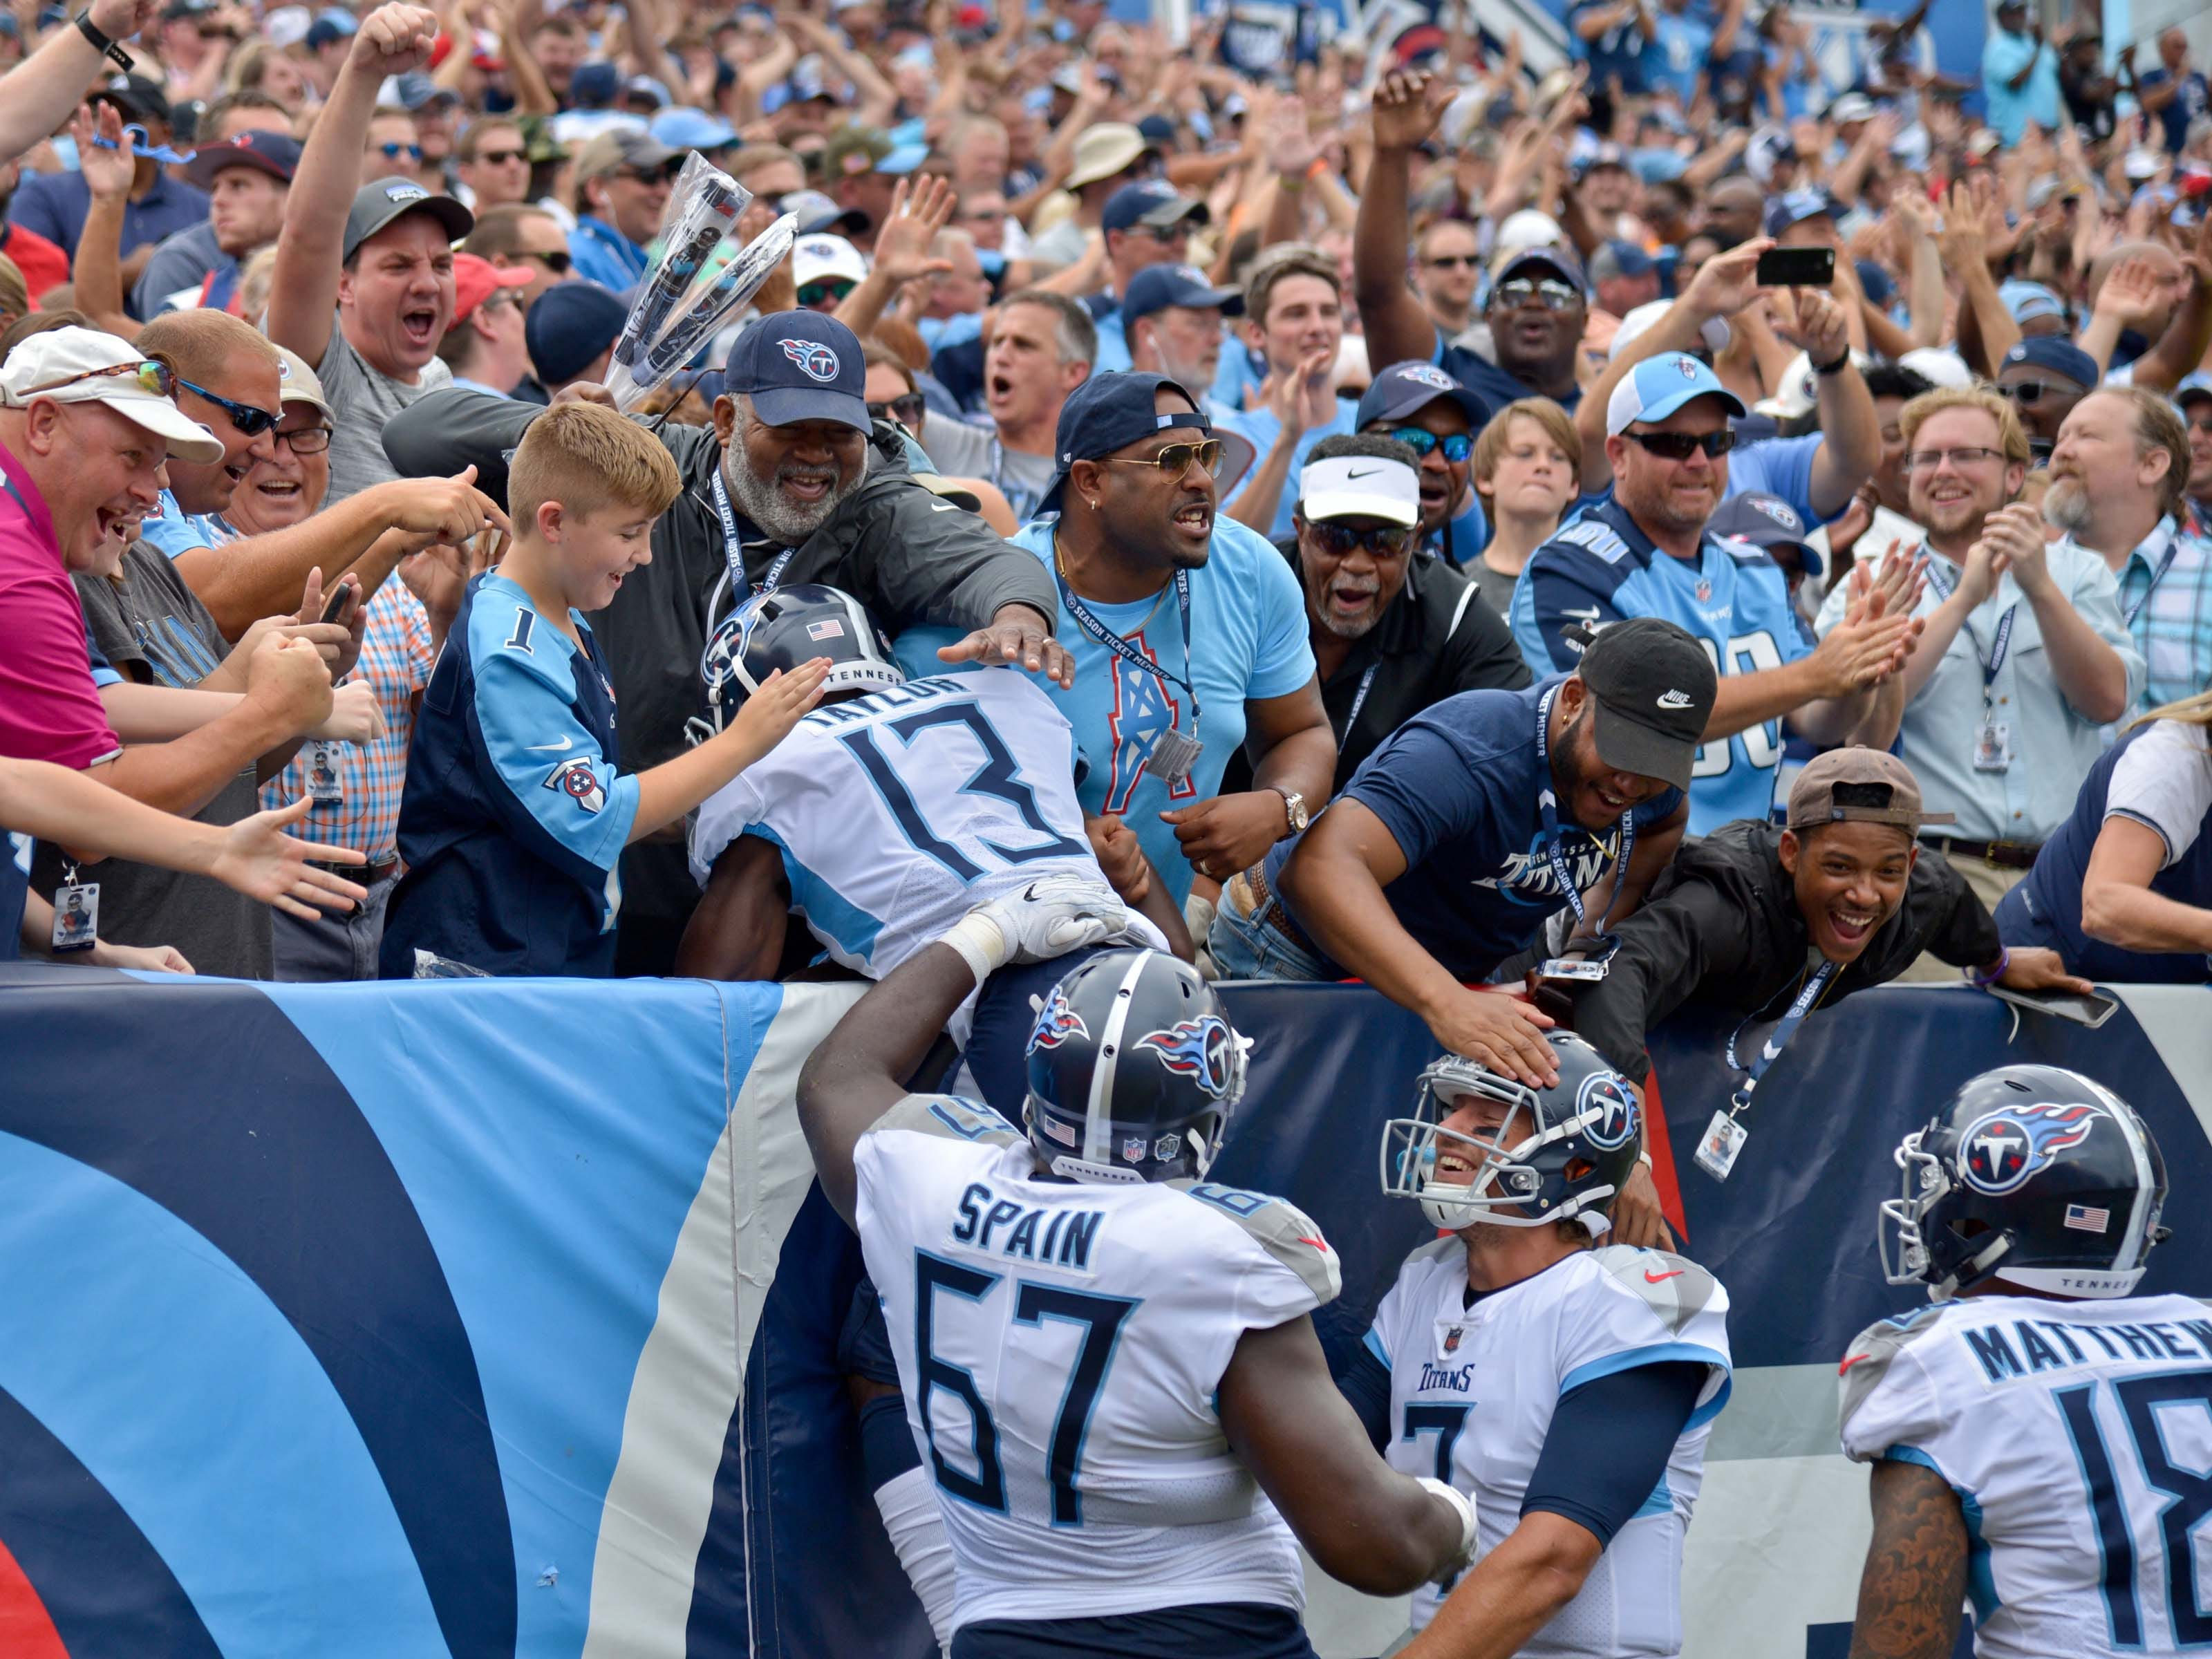 Tennessee Titans wide receiver Taywan Taylor celebrates with teammates Titans offensive guard Quinton Spain and quarterback Blaine Gabbert and wide receiver Rishard Matthews and fans after scoring a touchdown against the Houston Texans during the first half at Nissan Stadium.